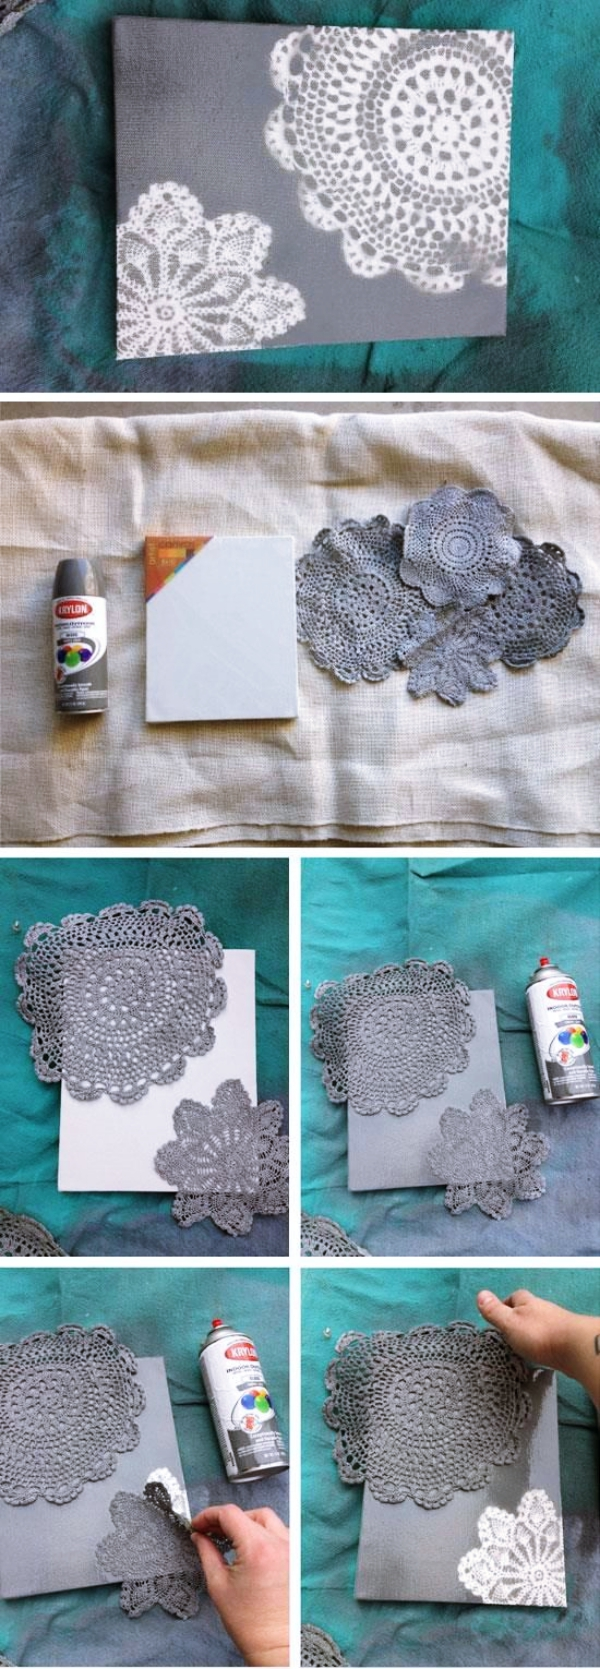 20 quick 5 minute painting projects for 2018 bored art for How to buy art for your home